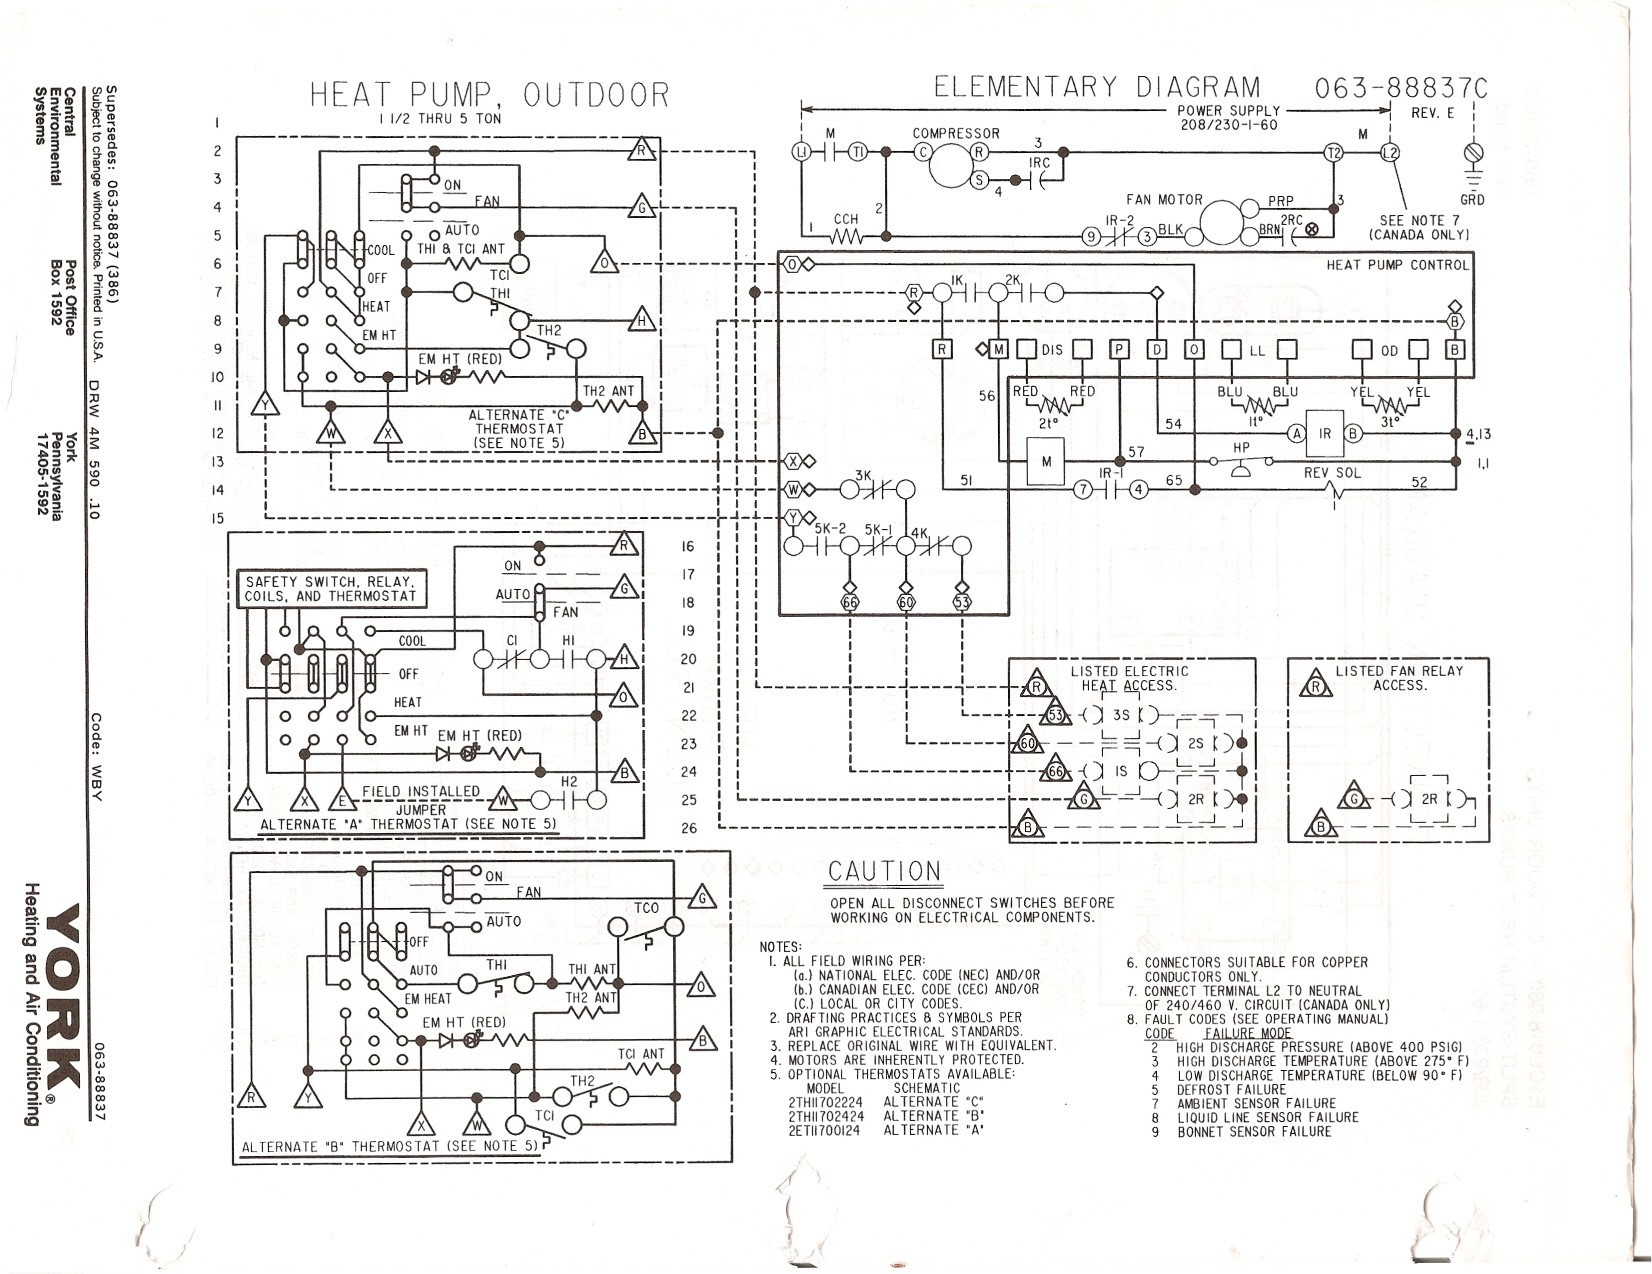 york electric furnace wiring diagram Collection-York Electric Furnace Wiring Diagram Fresh York D7cg Wiring Schematic Wiring Diagram • 12-l